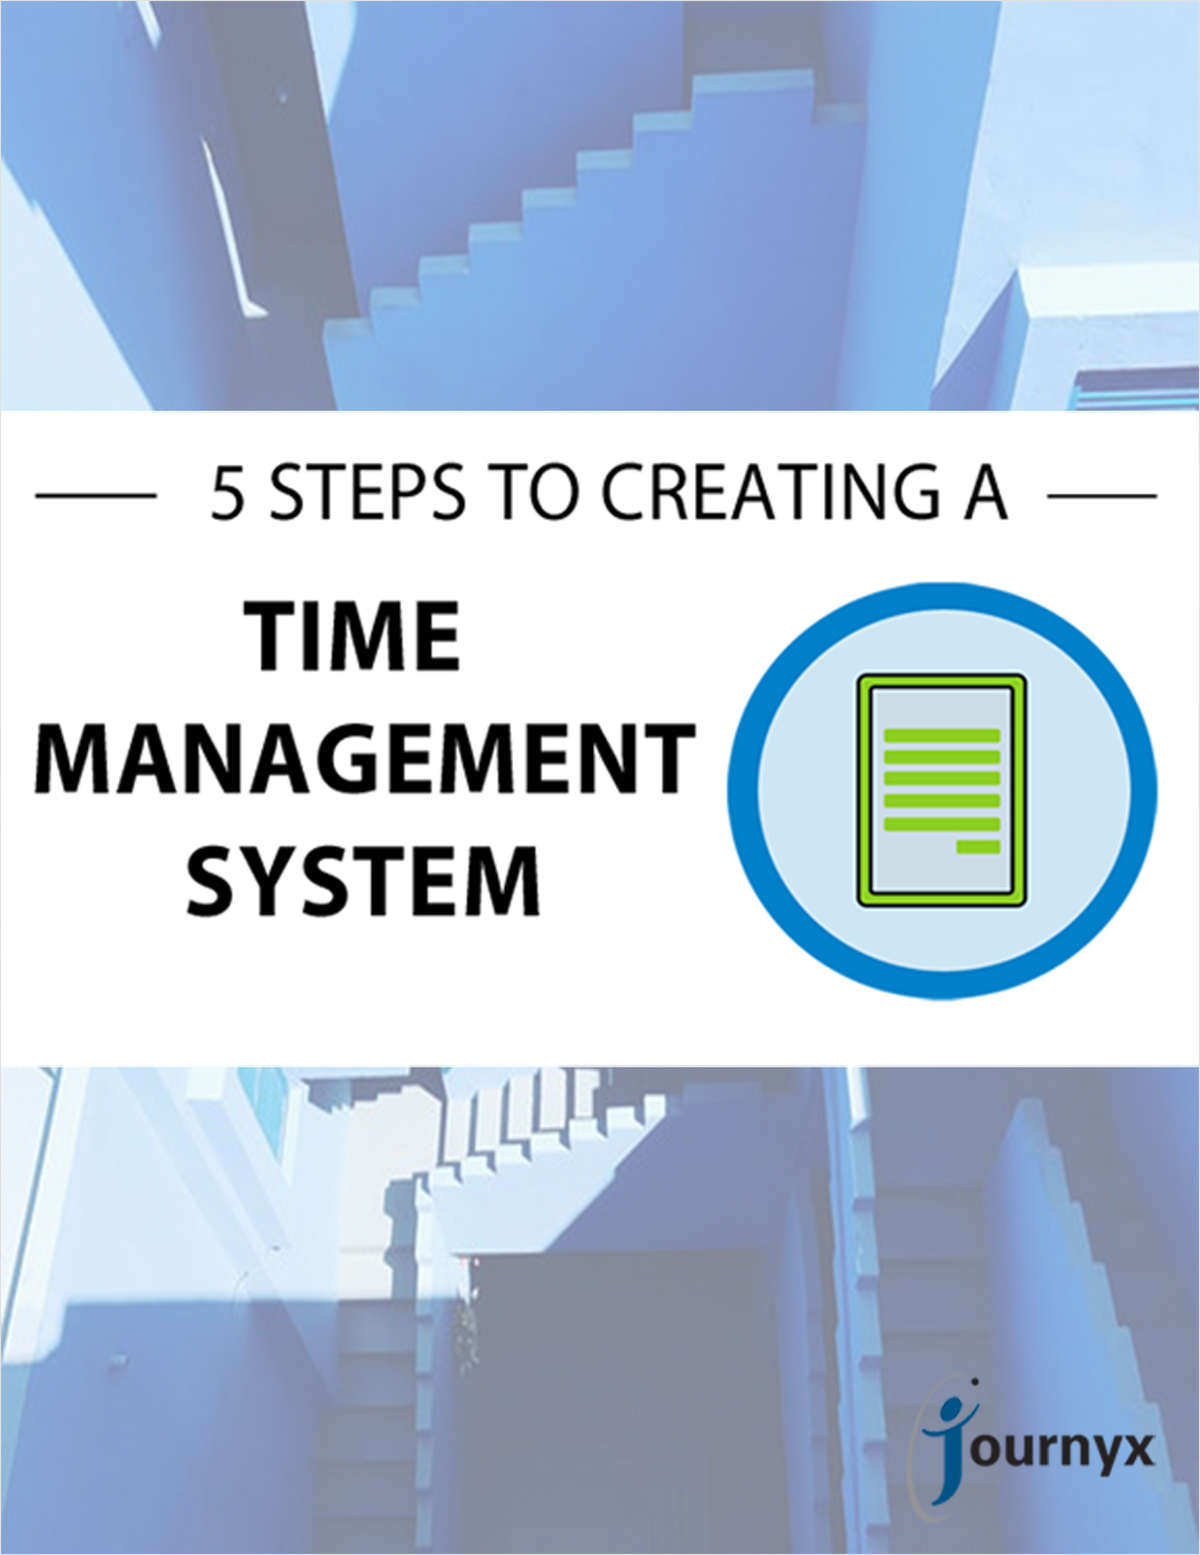 Five Steps to Creating a Time Management System